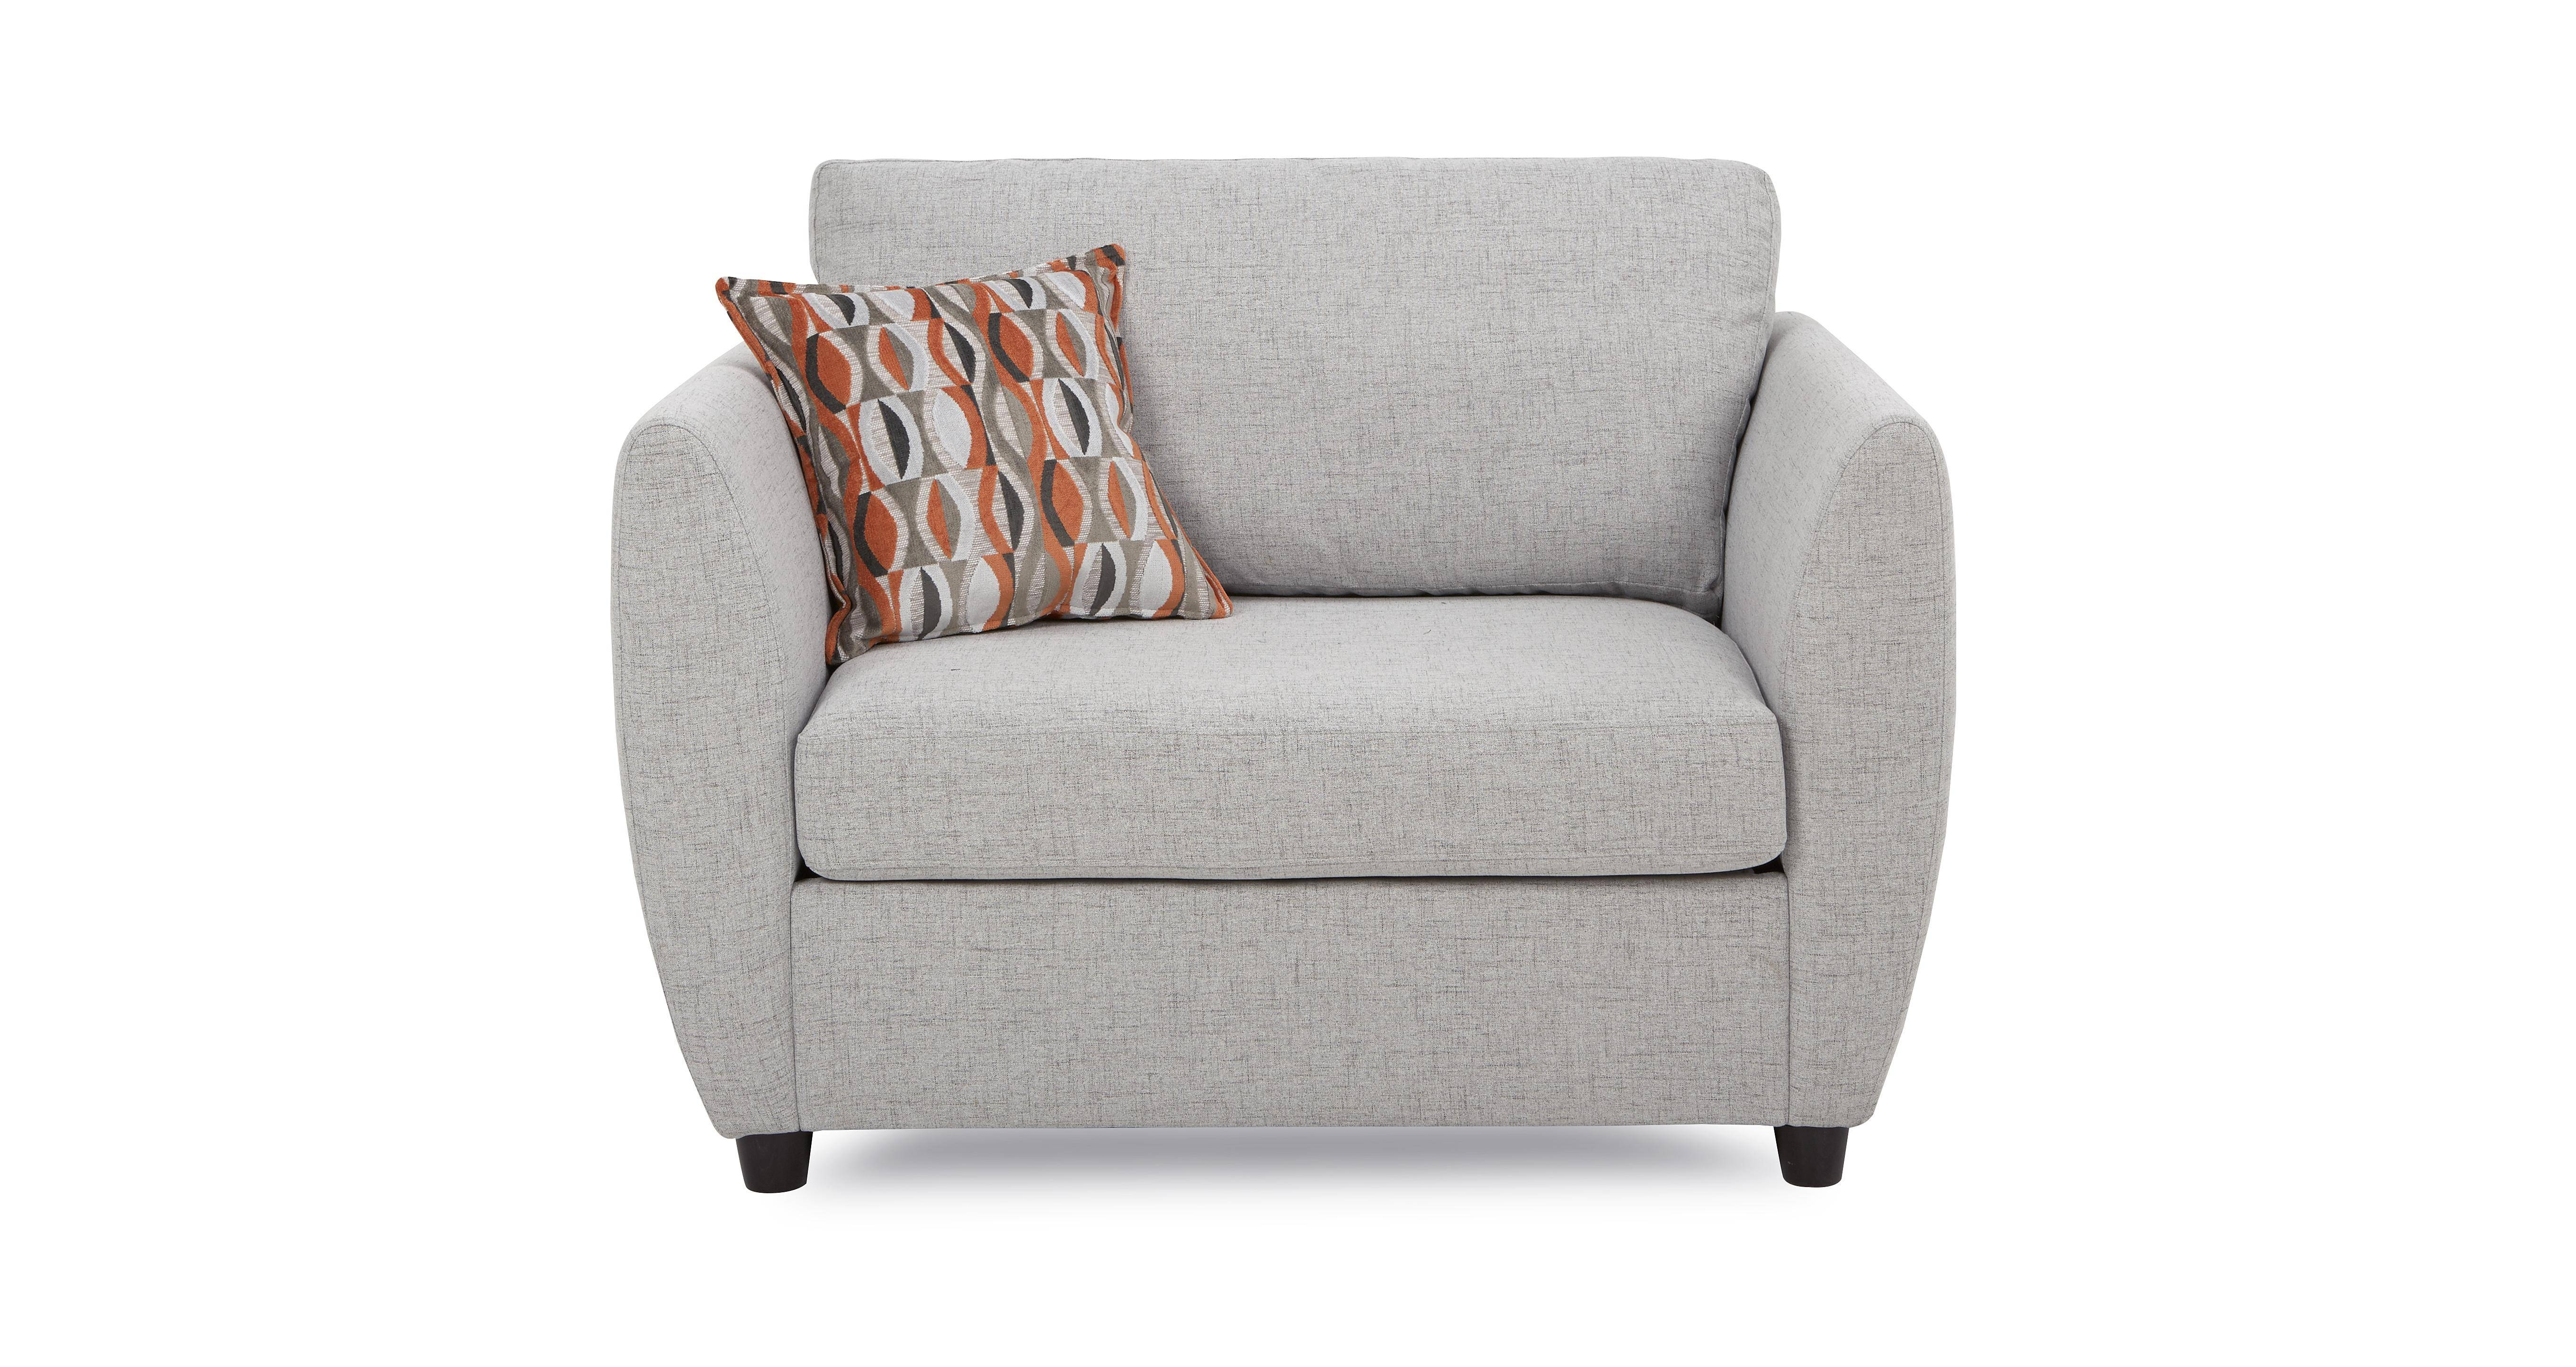 Sofas Center : 0136297 Pe293687 S5 Jpg Sofa Chair Beds For Adults With Chair Sofas (View 17 of 30)